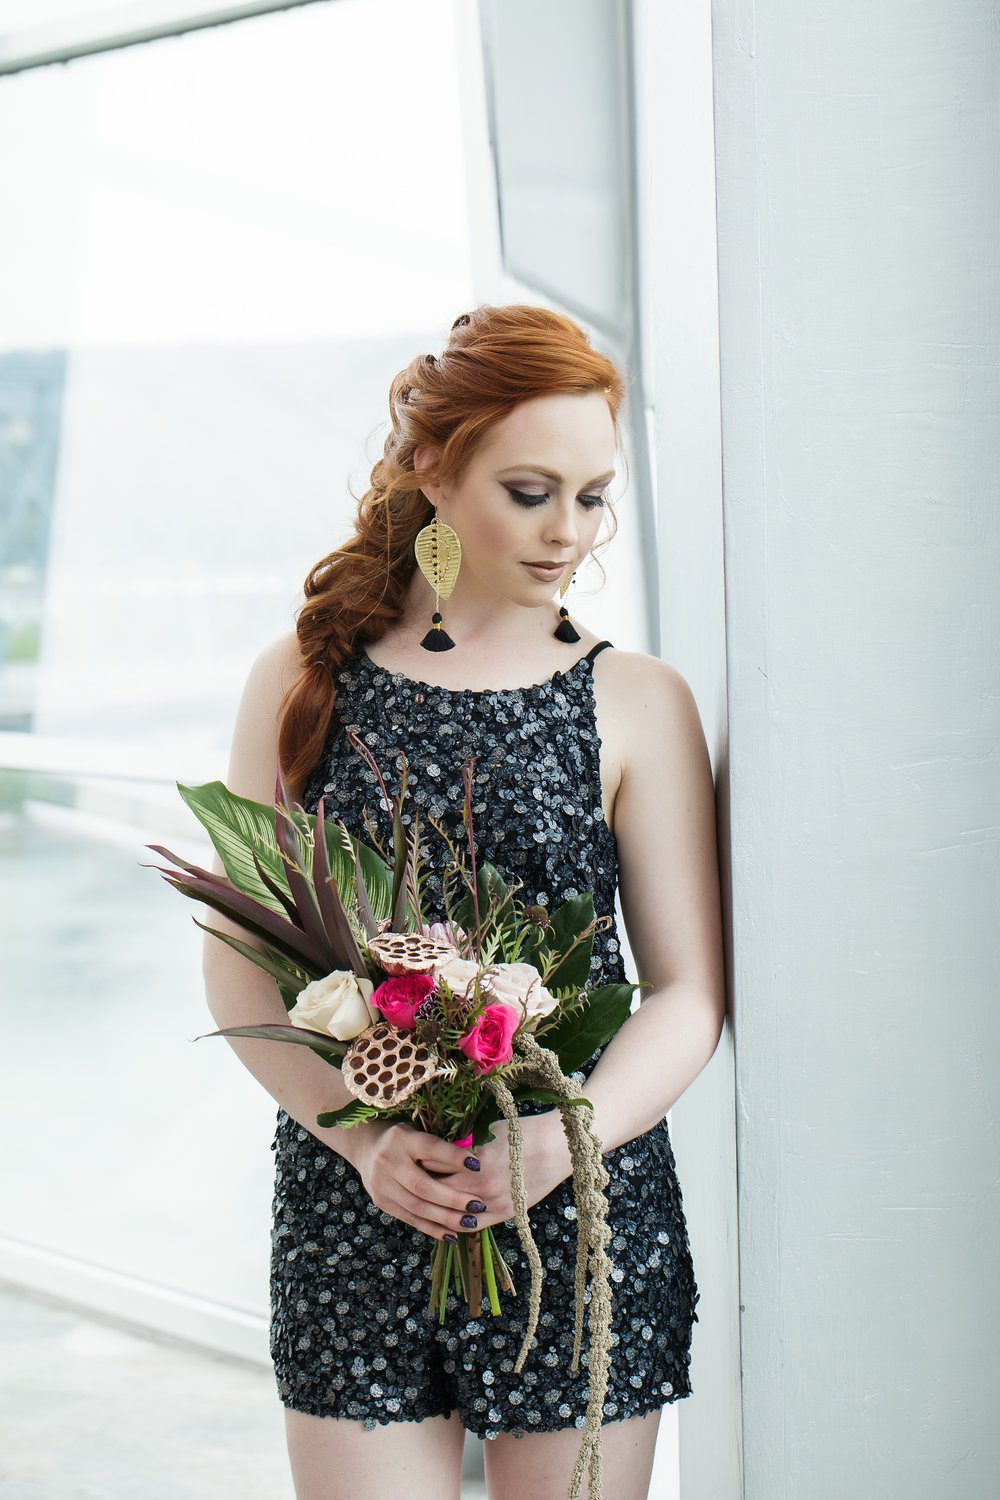 Fox-and-Fern-Bridesmaid-Bouquet-2050-Styled-Shoot-003.jpg